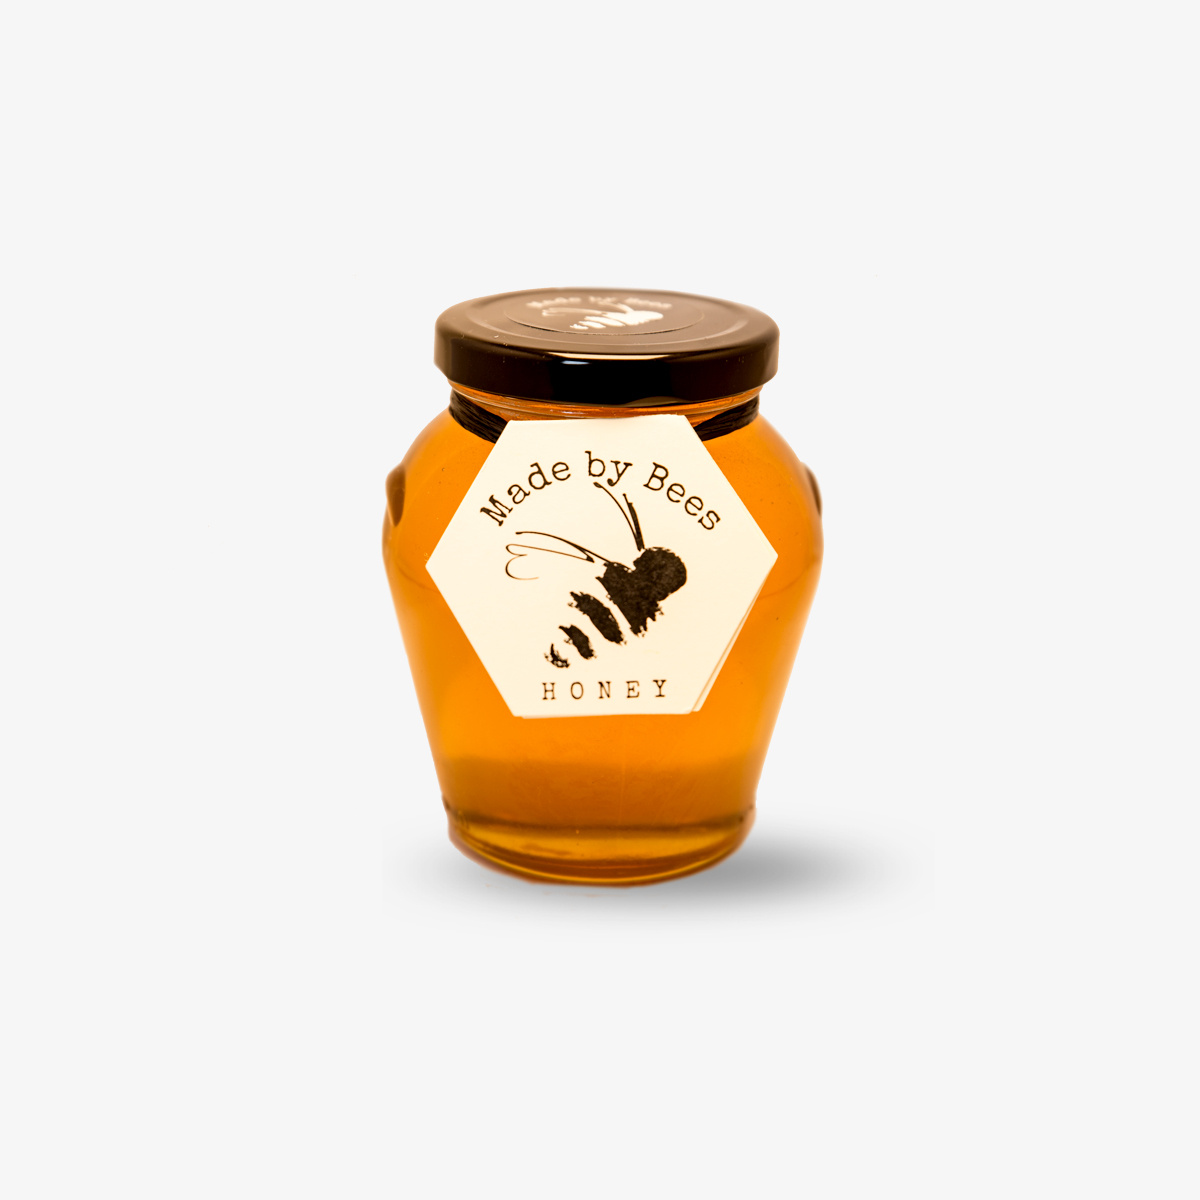 Made by Bees, Golden Honey, 500g